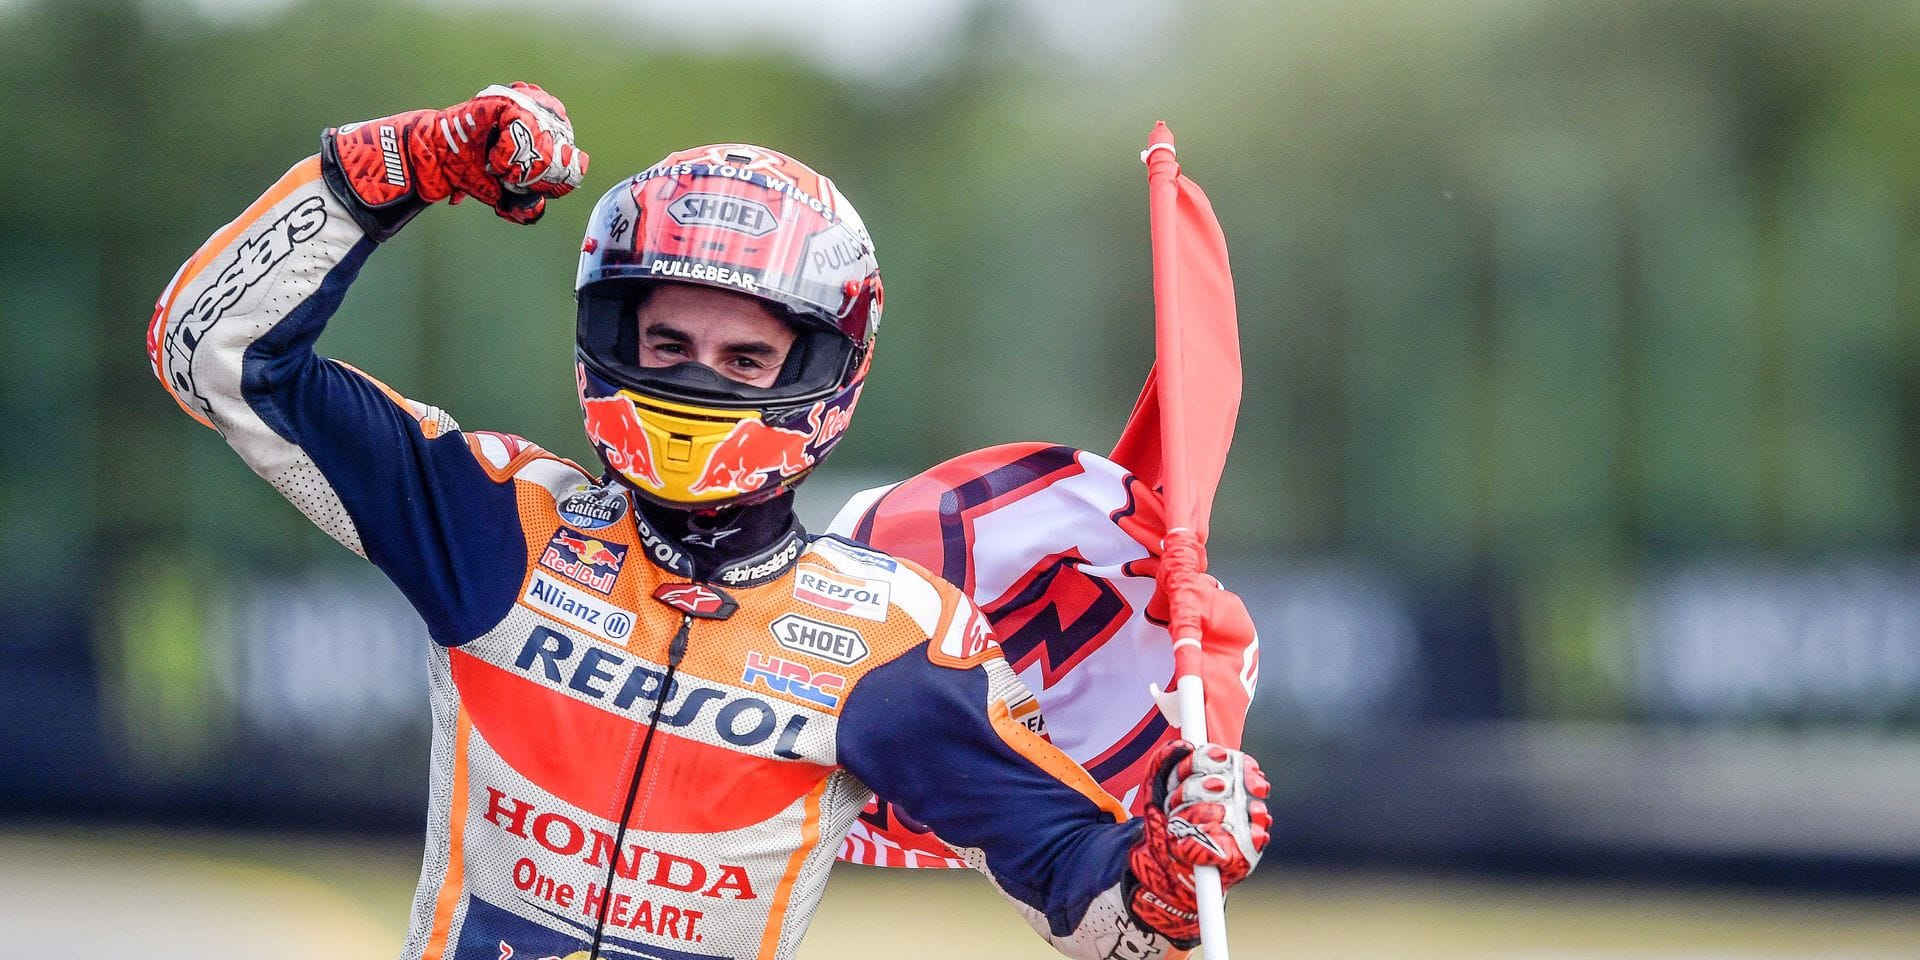 TOPSHOT - Winner Repsol Honda Team's Spanish rider Marc Marquez celebrates after the Moto GP Czech Grand Prix in Brno on August 4, 2019. (Photo by Michal CIZEK / AFP)